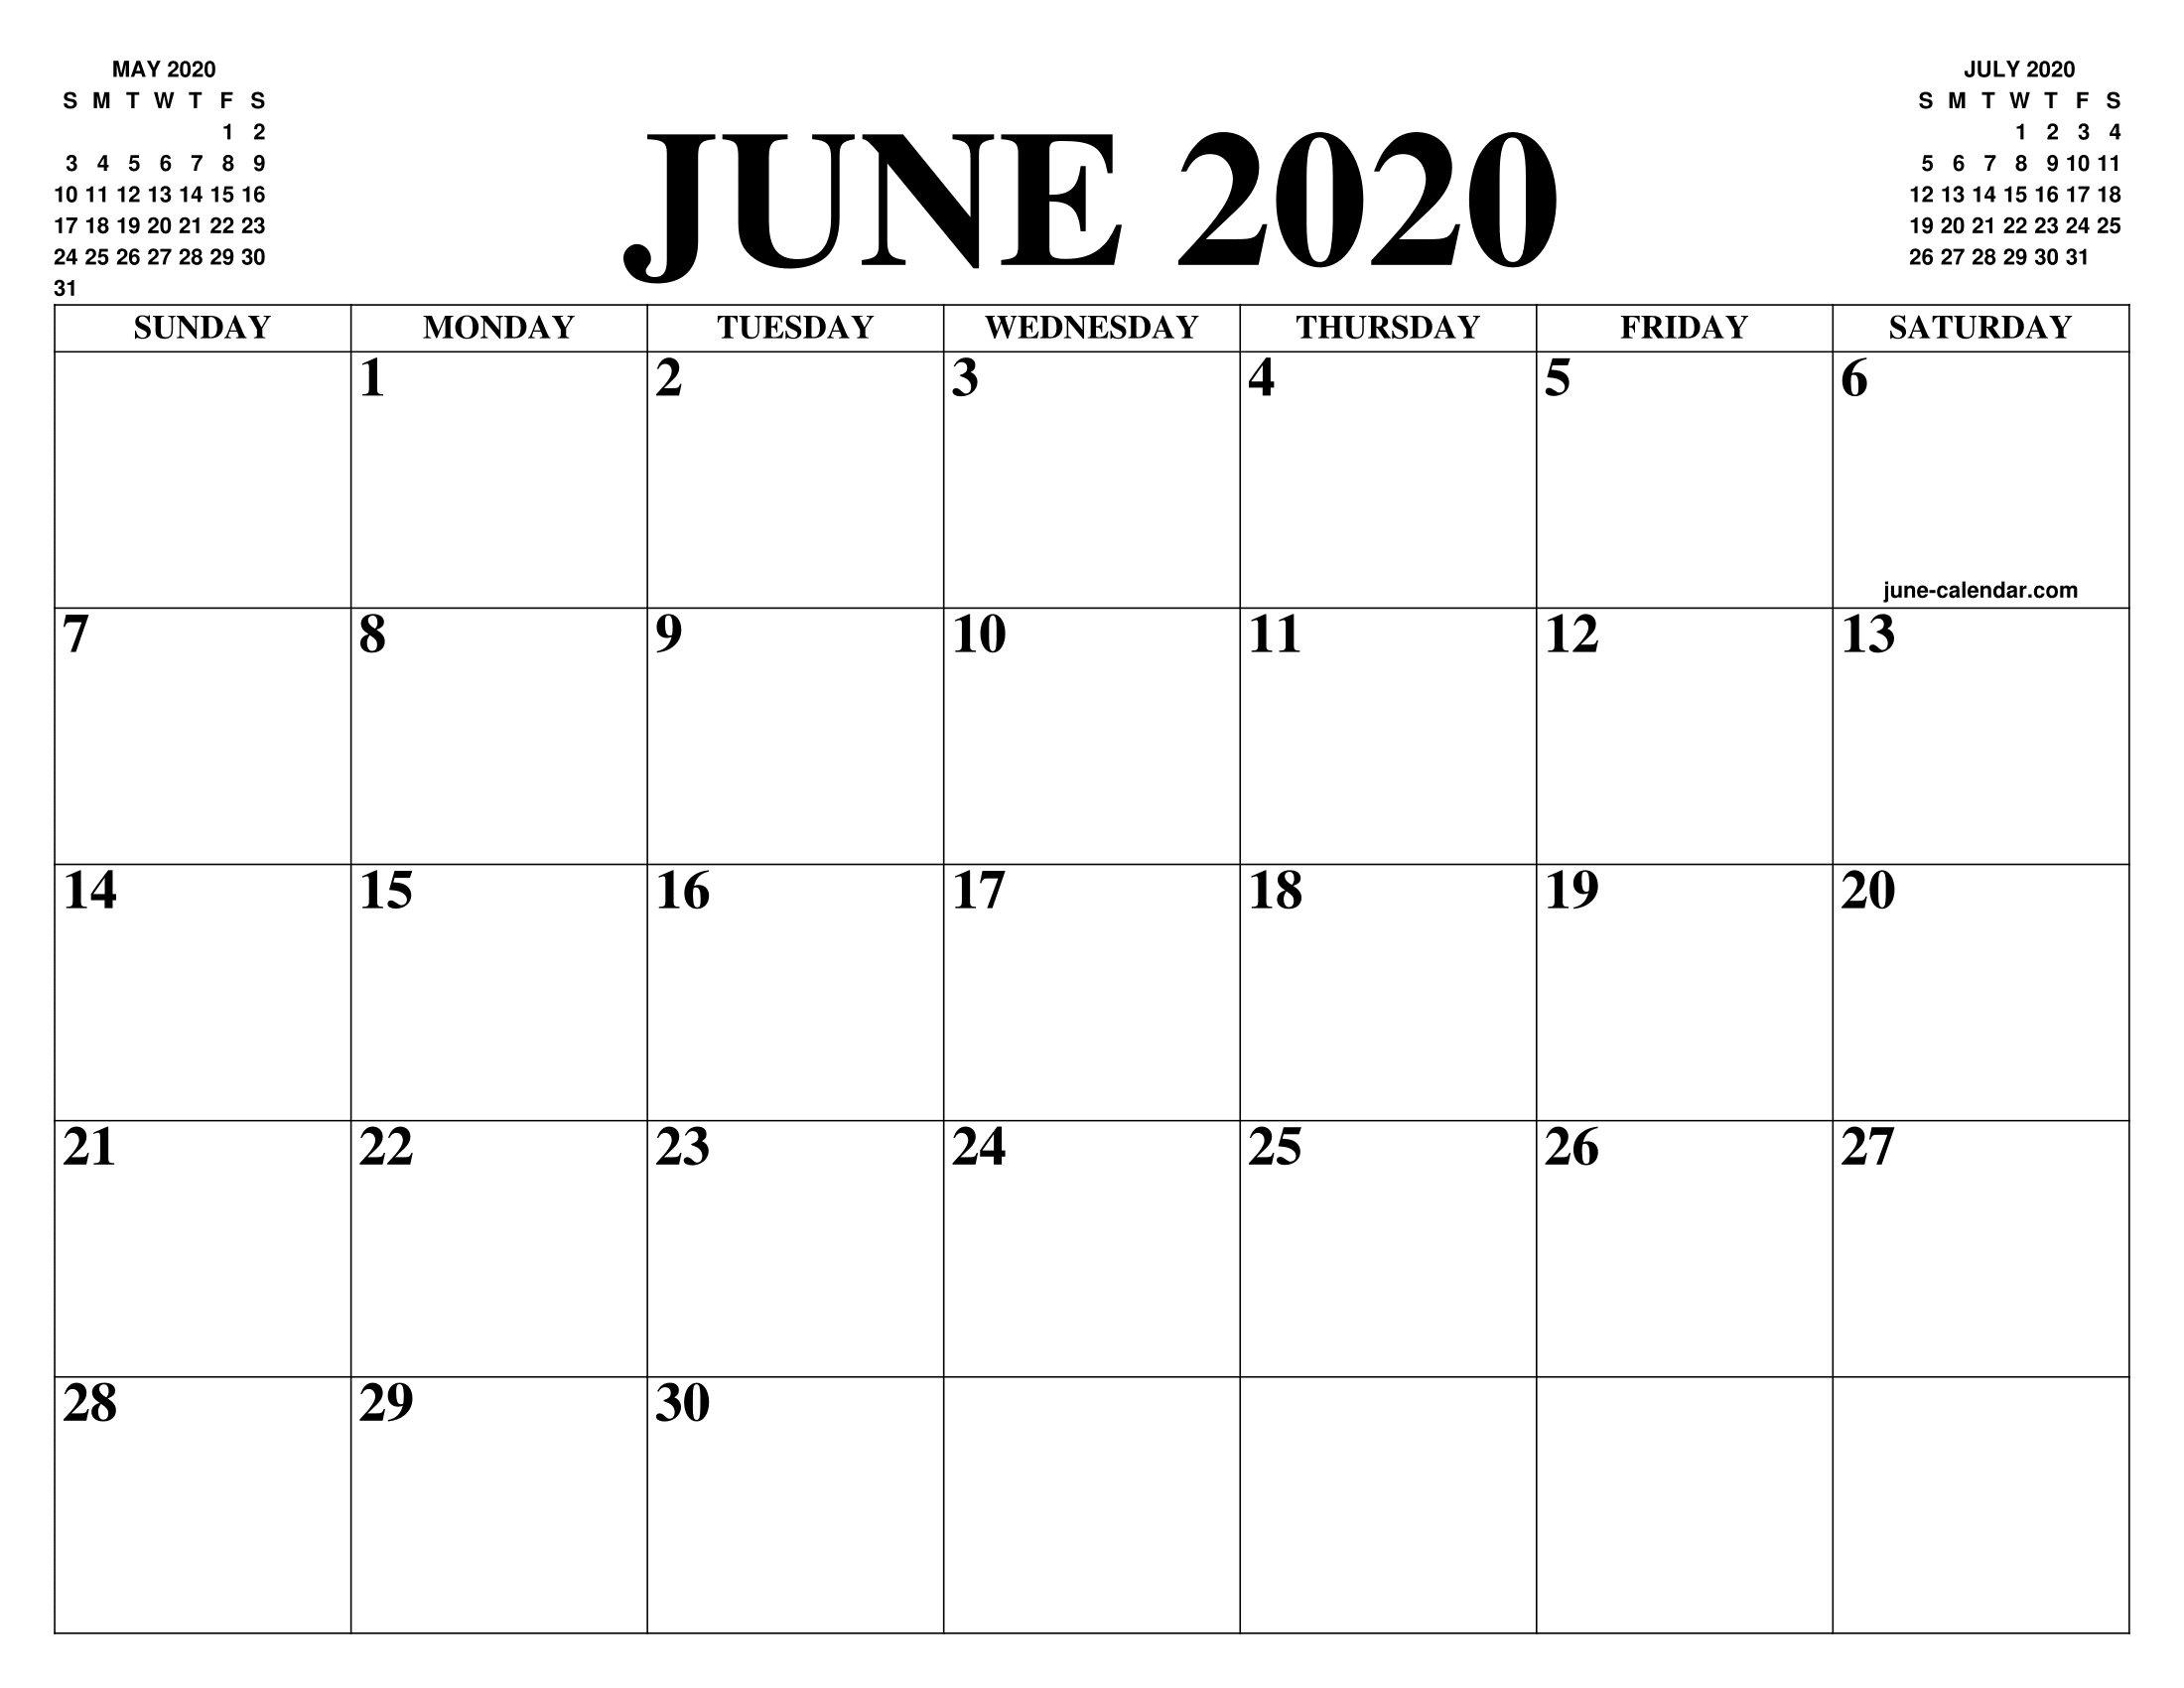 June 2020 Calendar Of The Month Free Printable June Calendar Of The